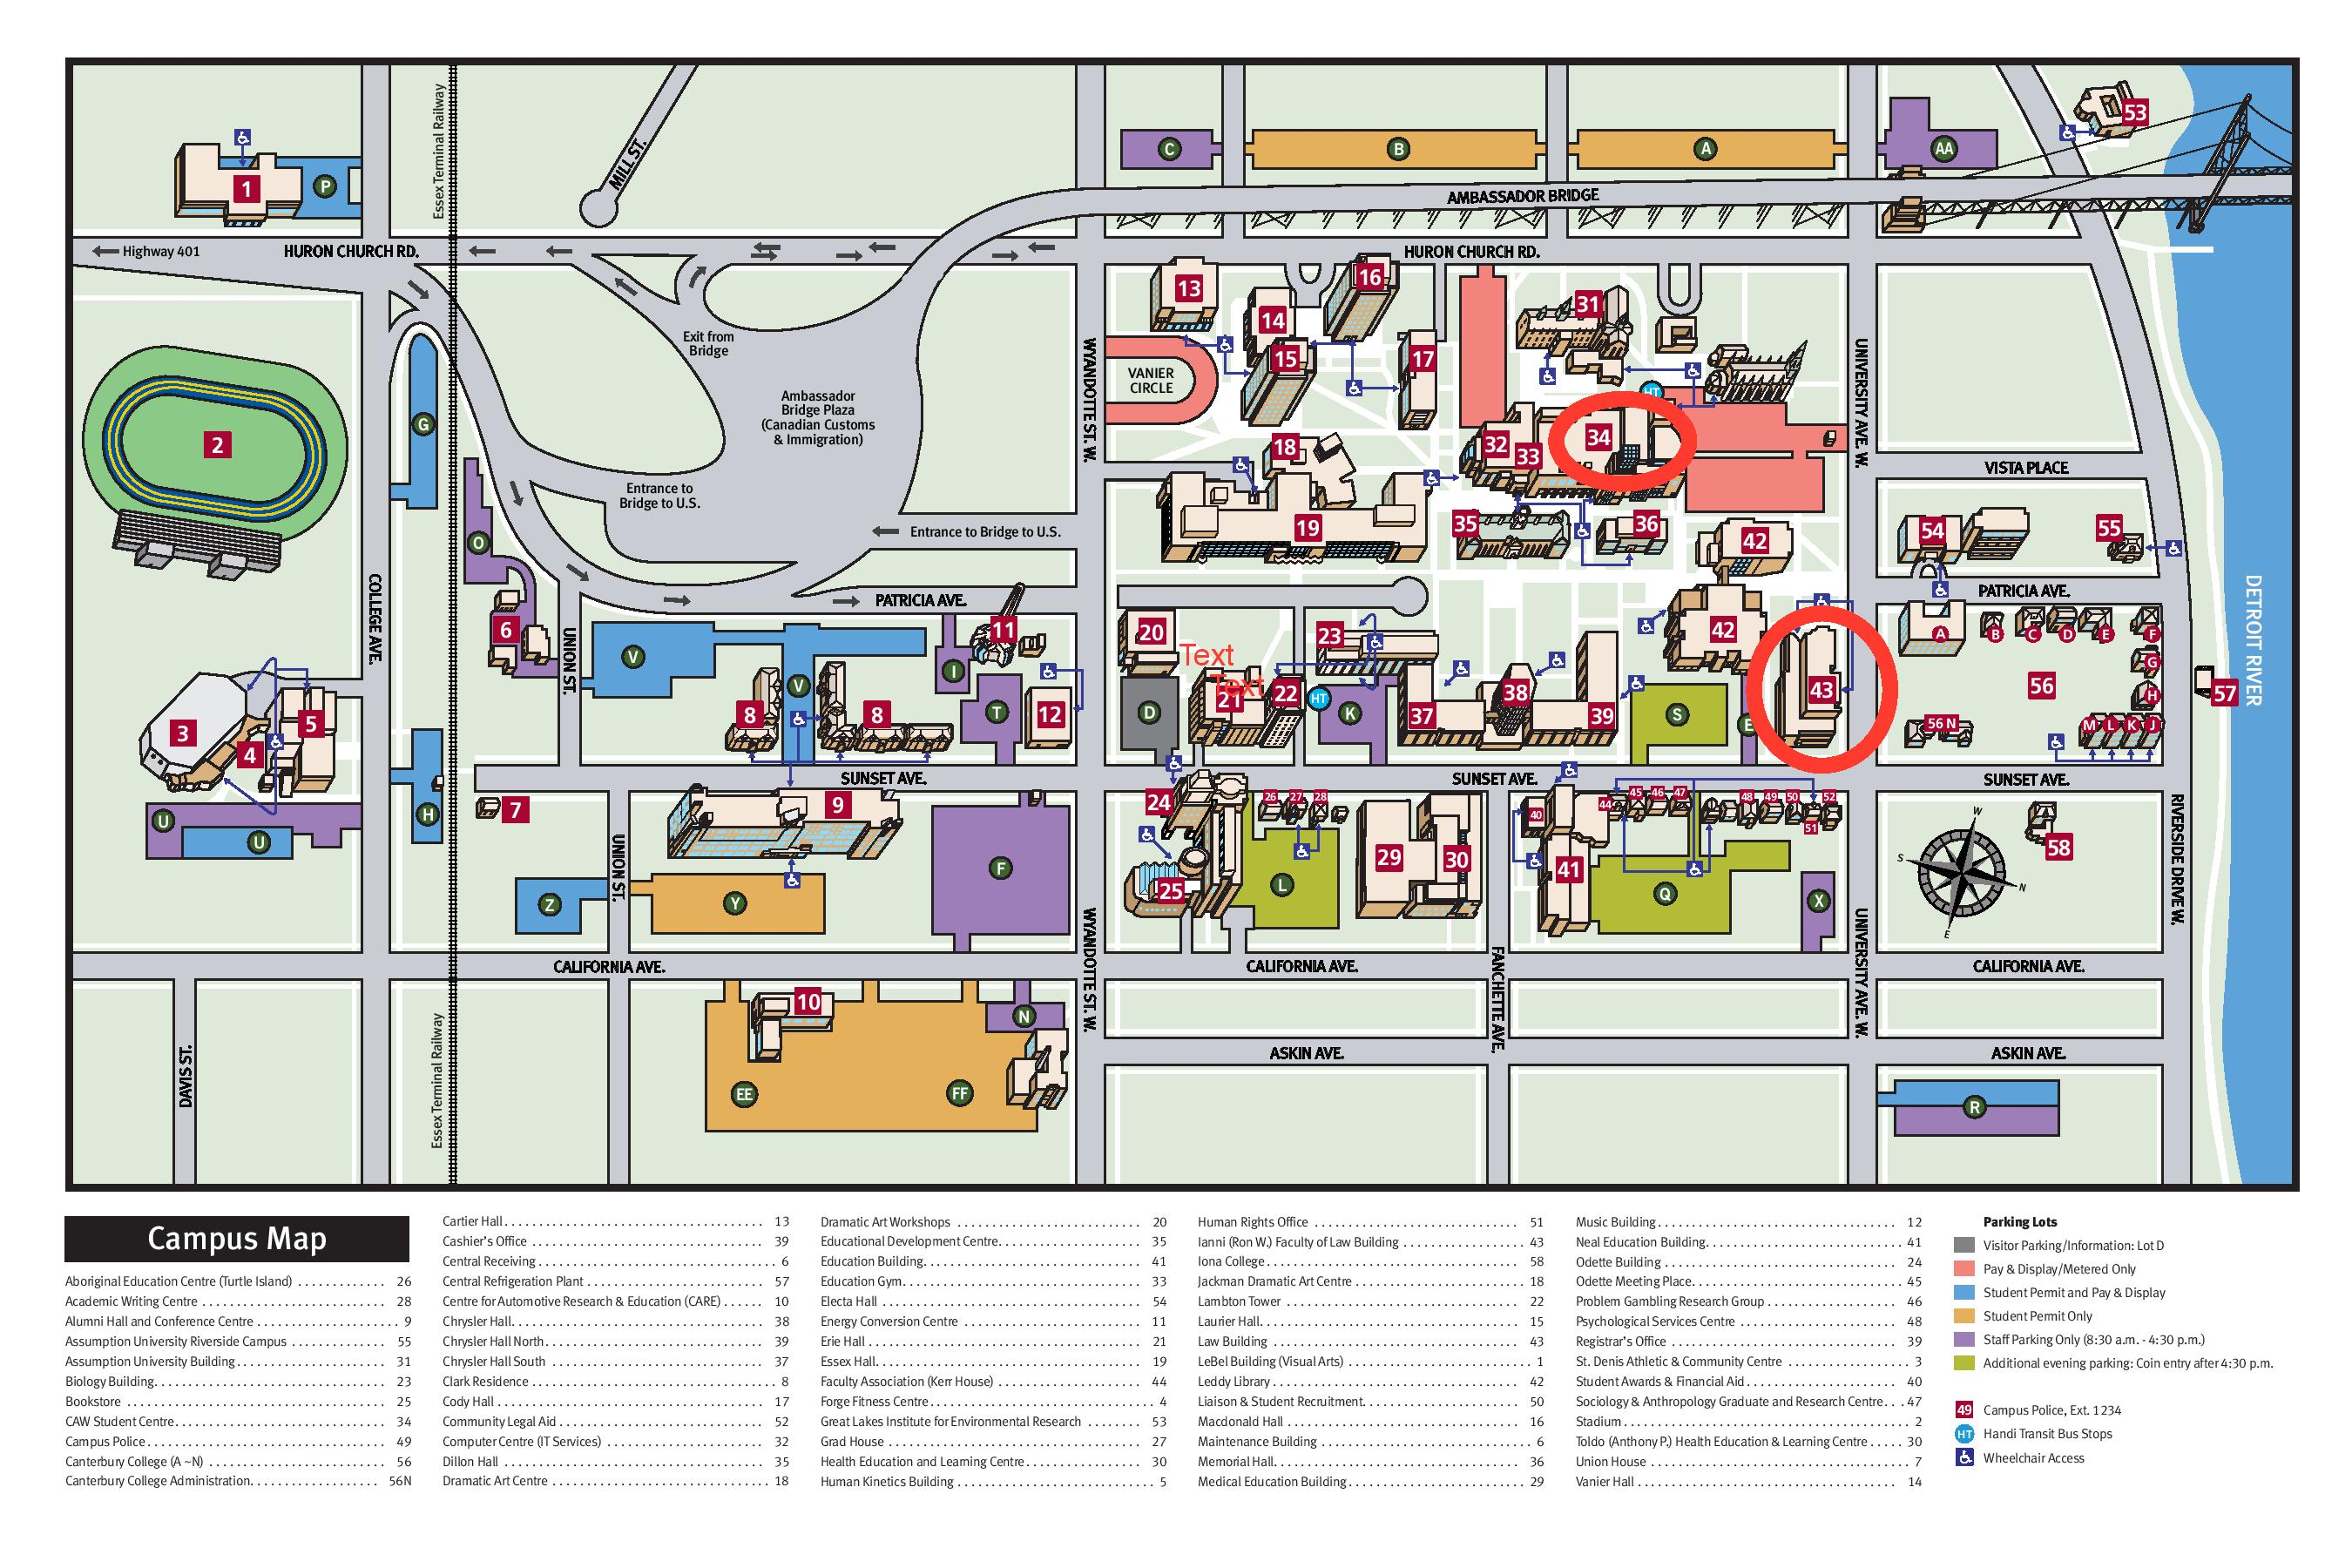 Uwindsor Campus Map.Events Law Disability Social Change